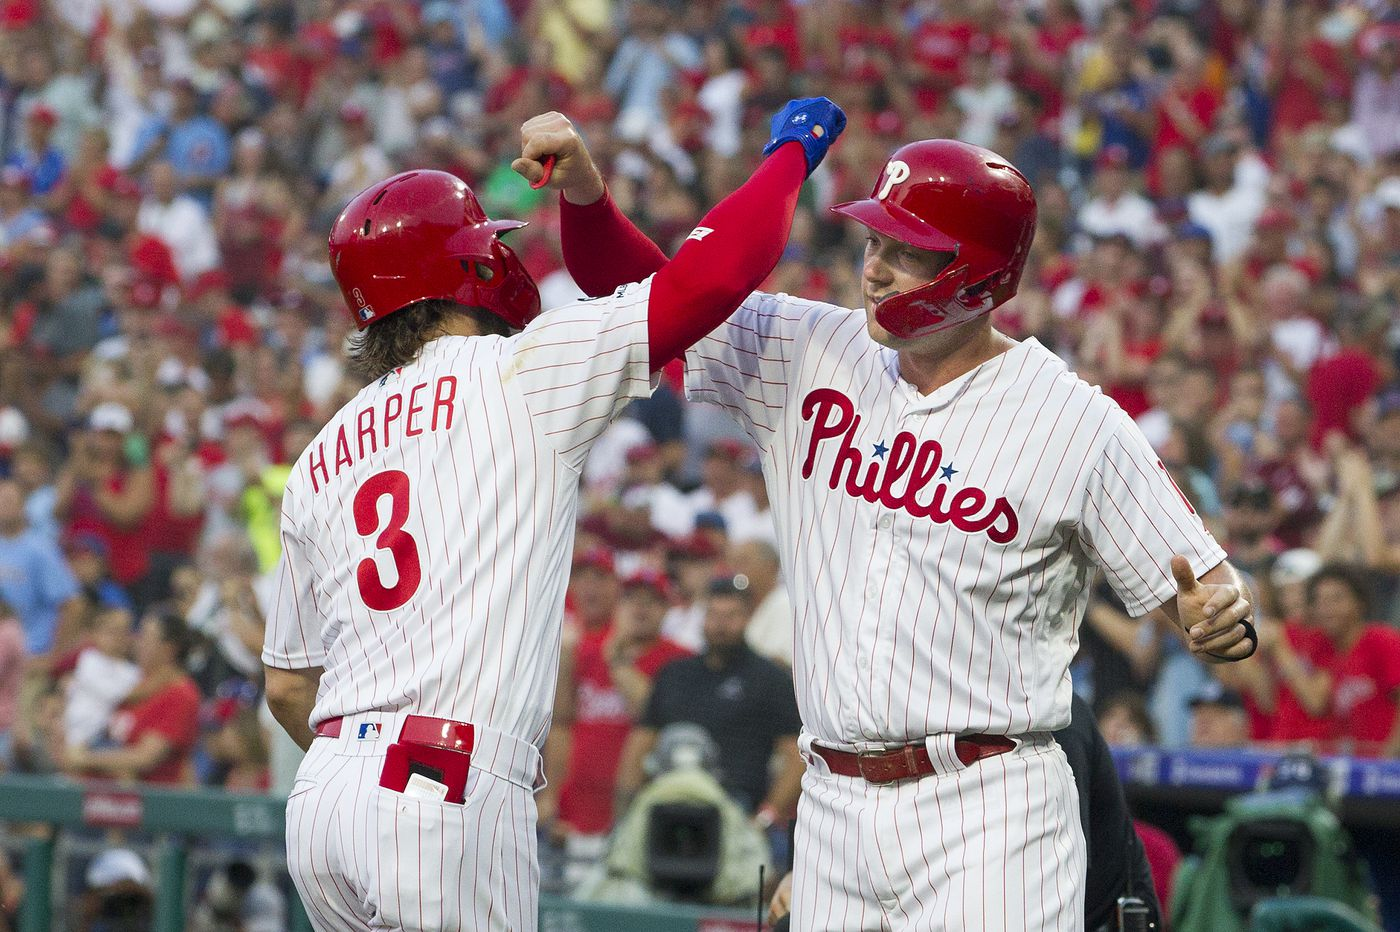 Bryce Harper homers twice, Phillies break out for 11 runs to rout Cubs in Charlie Manuel's first game as hitting coach